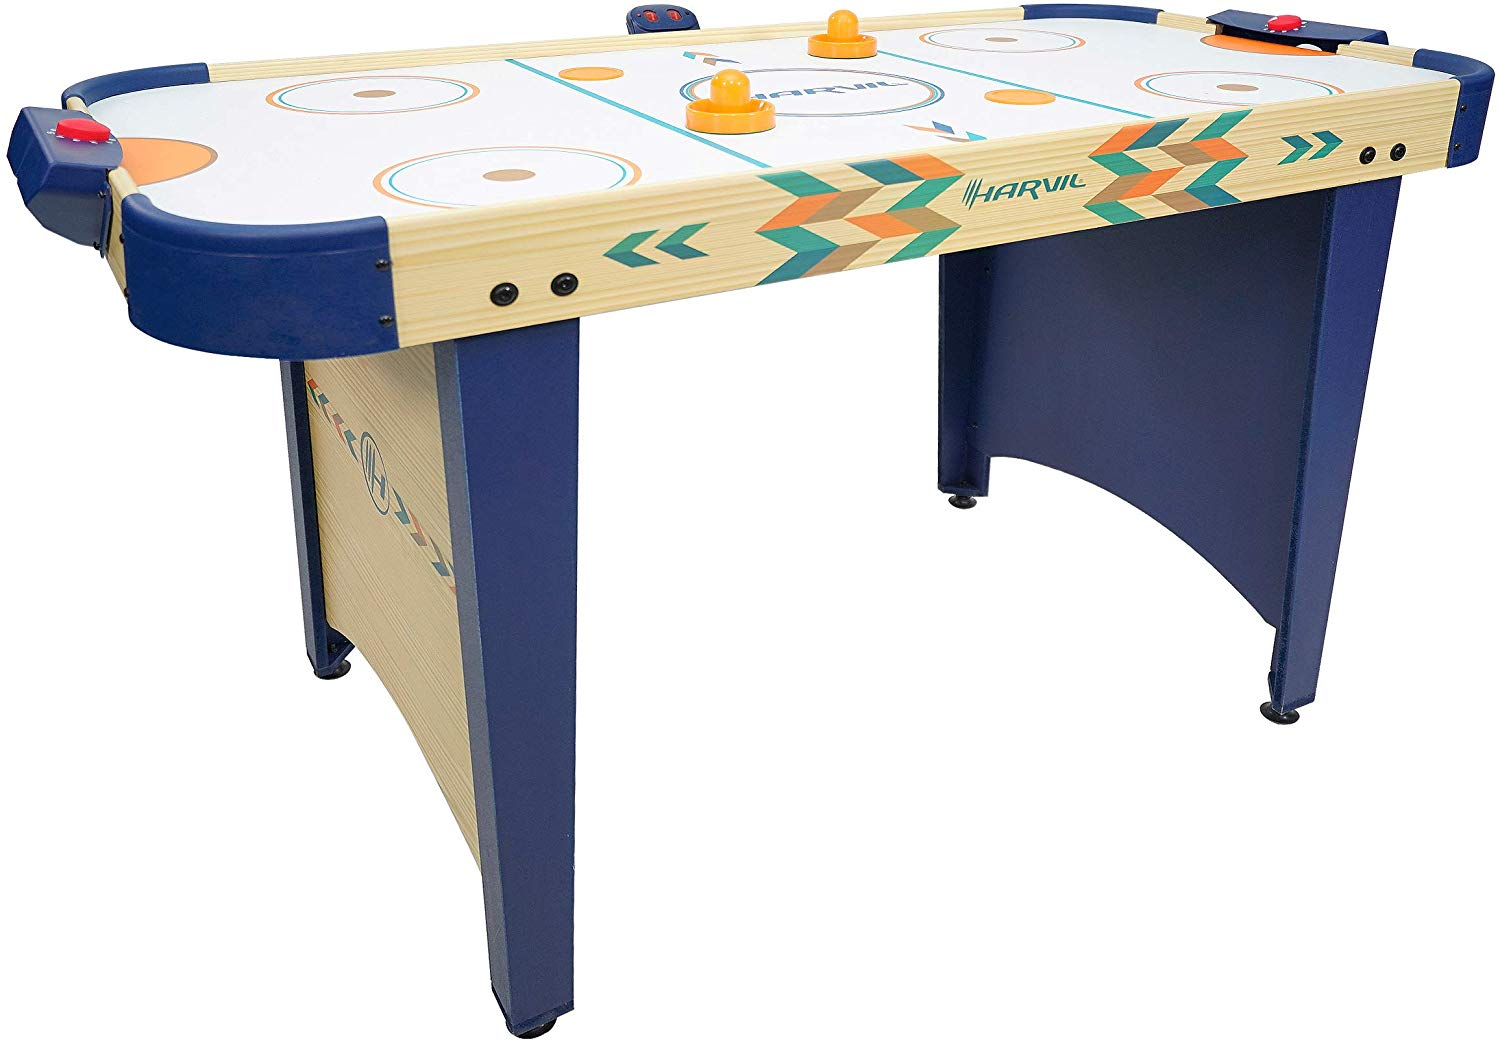 Harvil Air Hockey Game Table